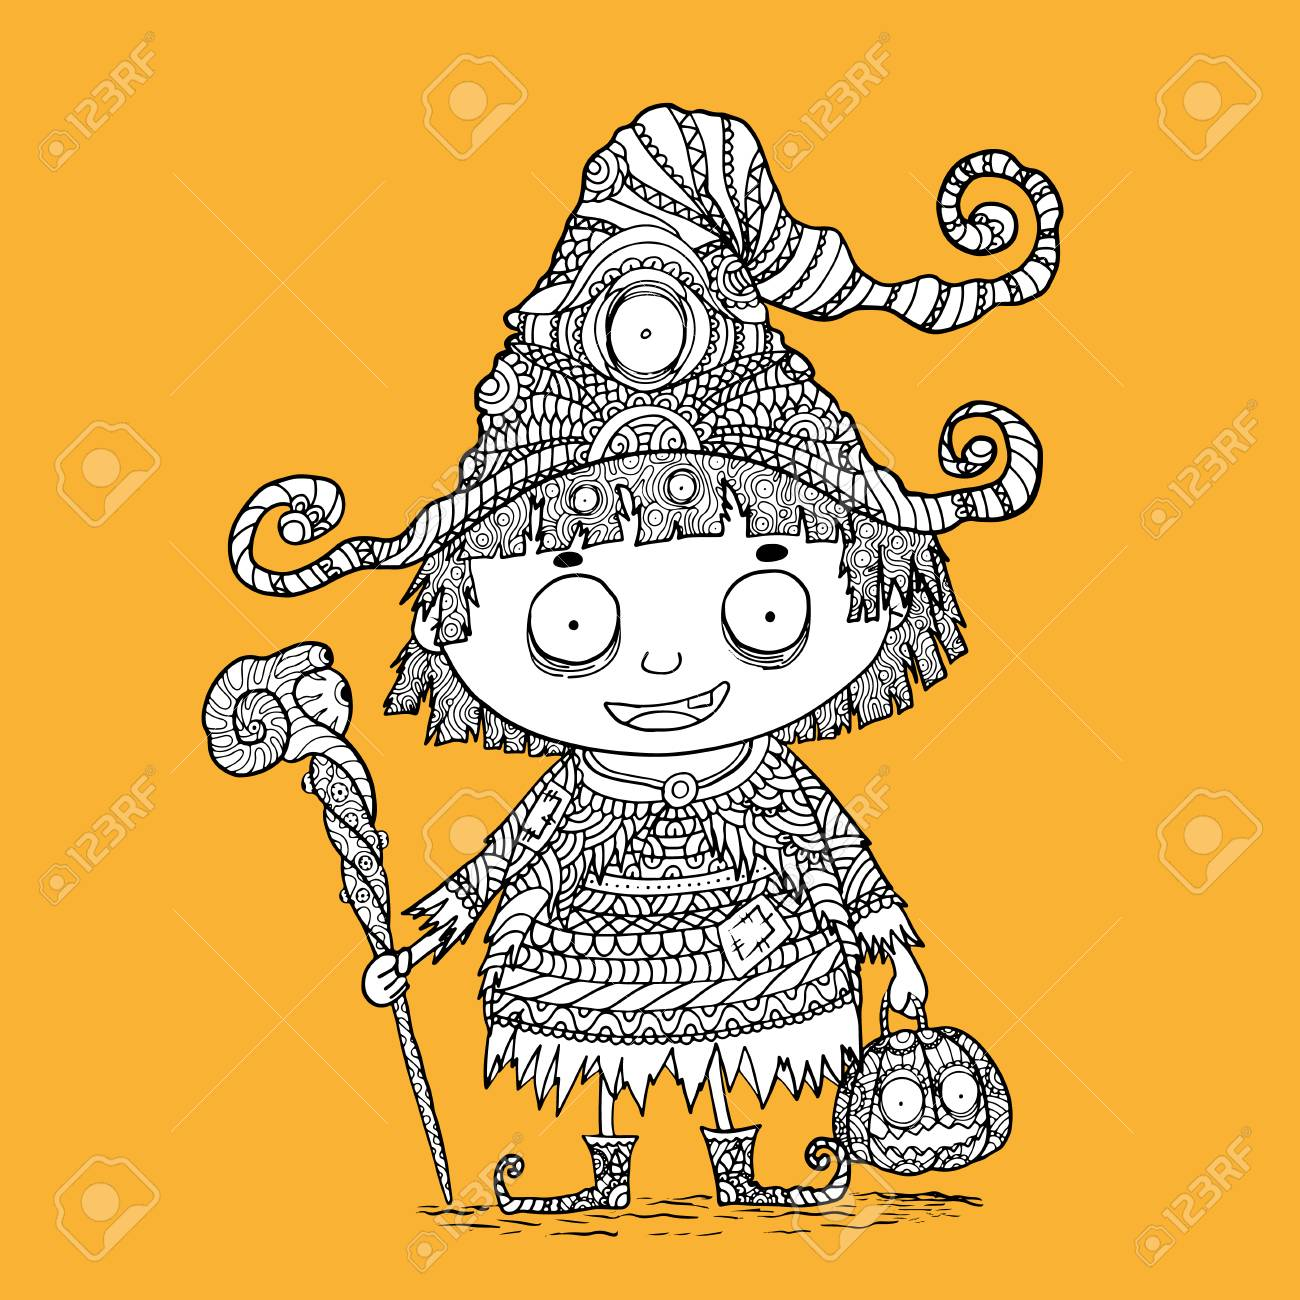 Little Witch Zentangle By Hand Drawing Cute Witch Vector In Halloween Royalty Free Cliparts Vectors And Stock Illustration Image 69341299